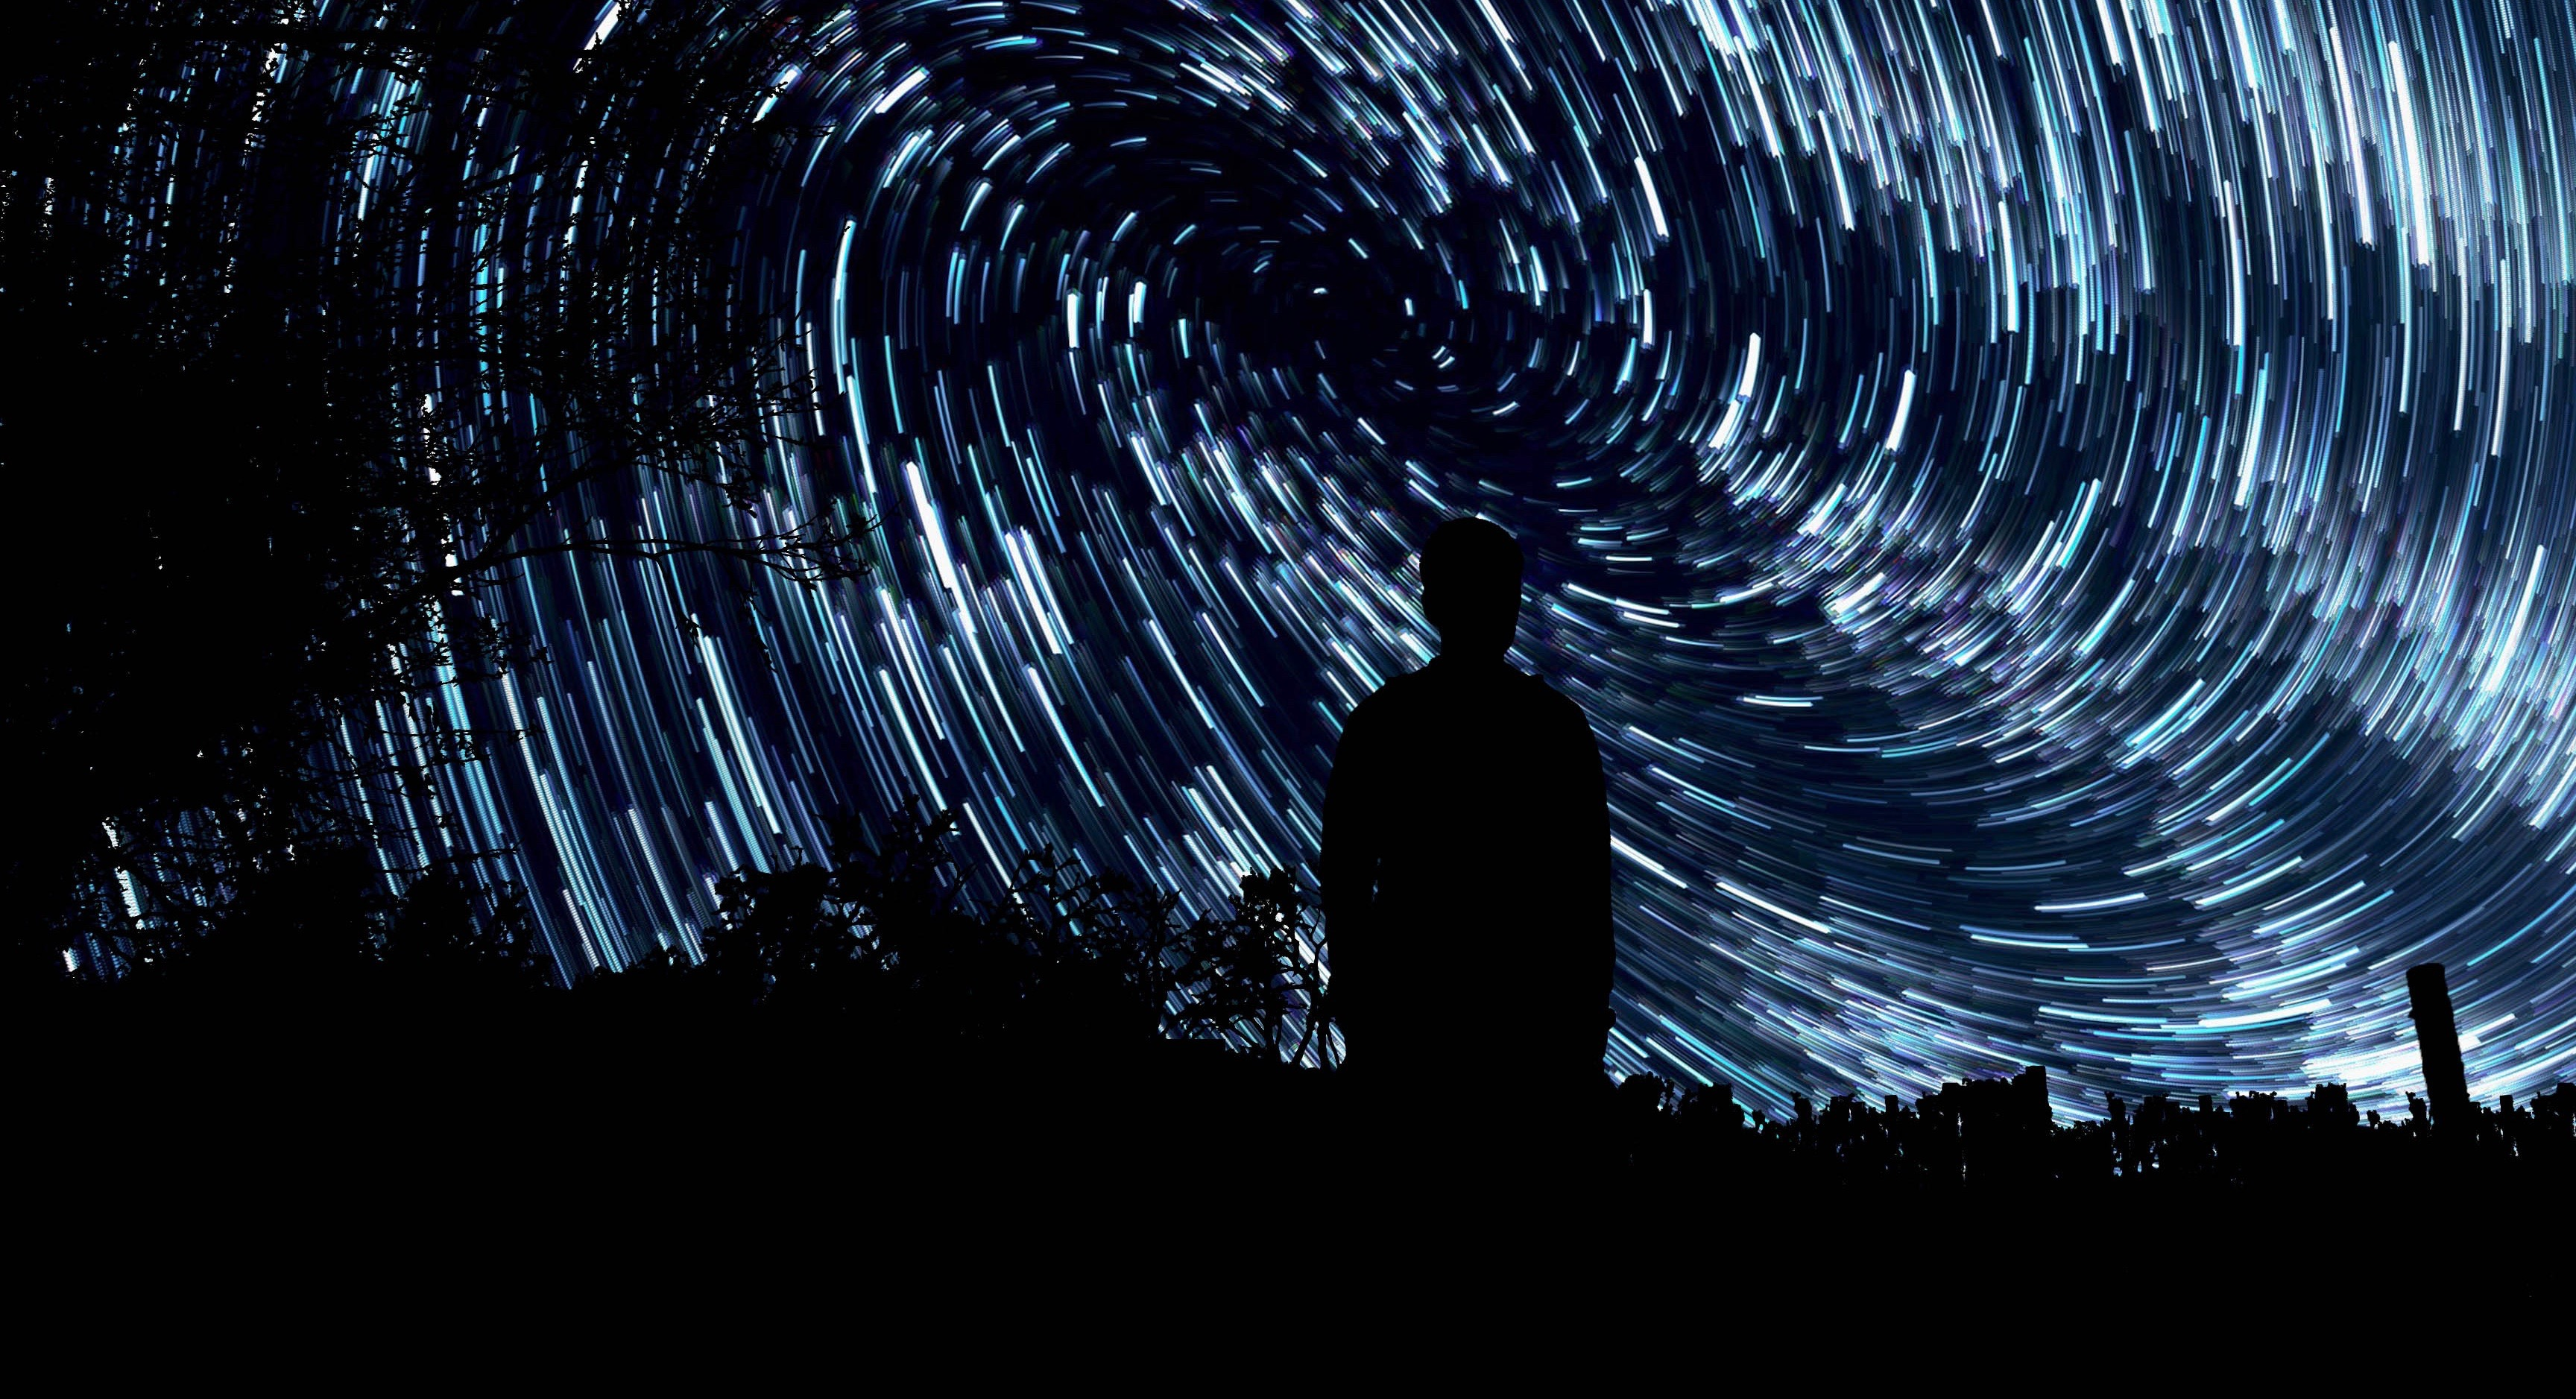 silhouette of man standing in front of stars